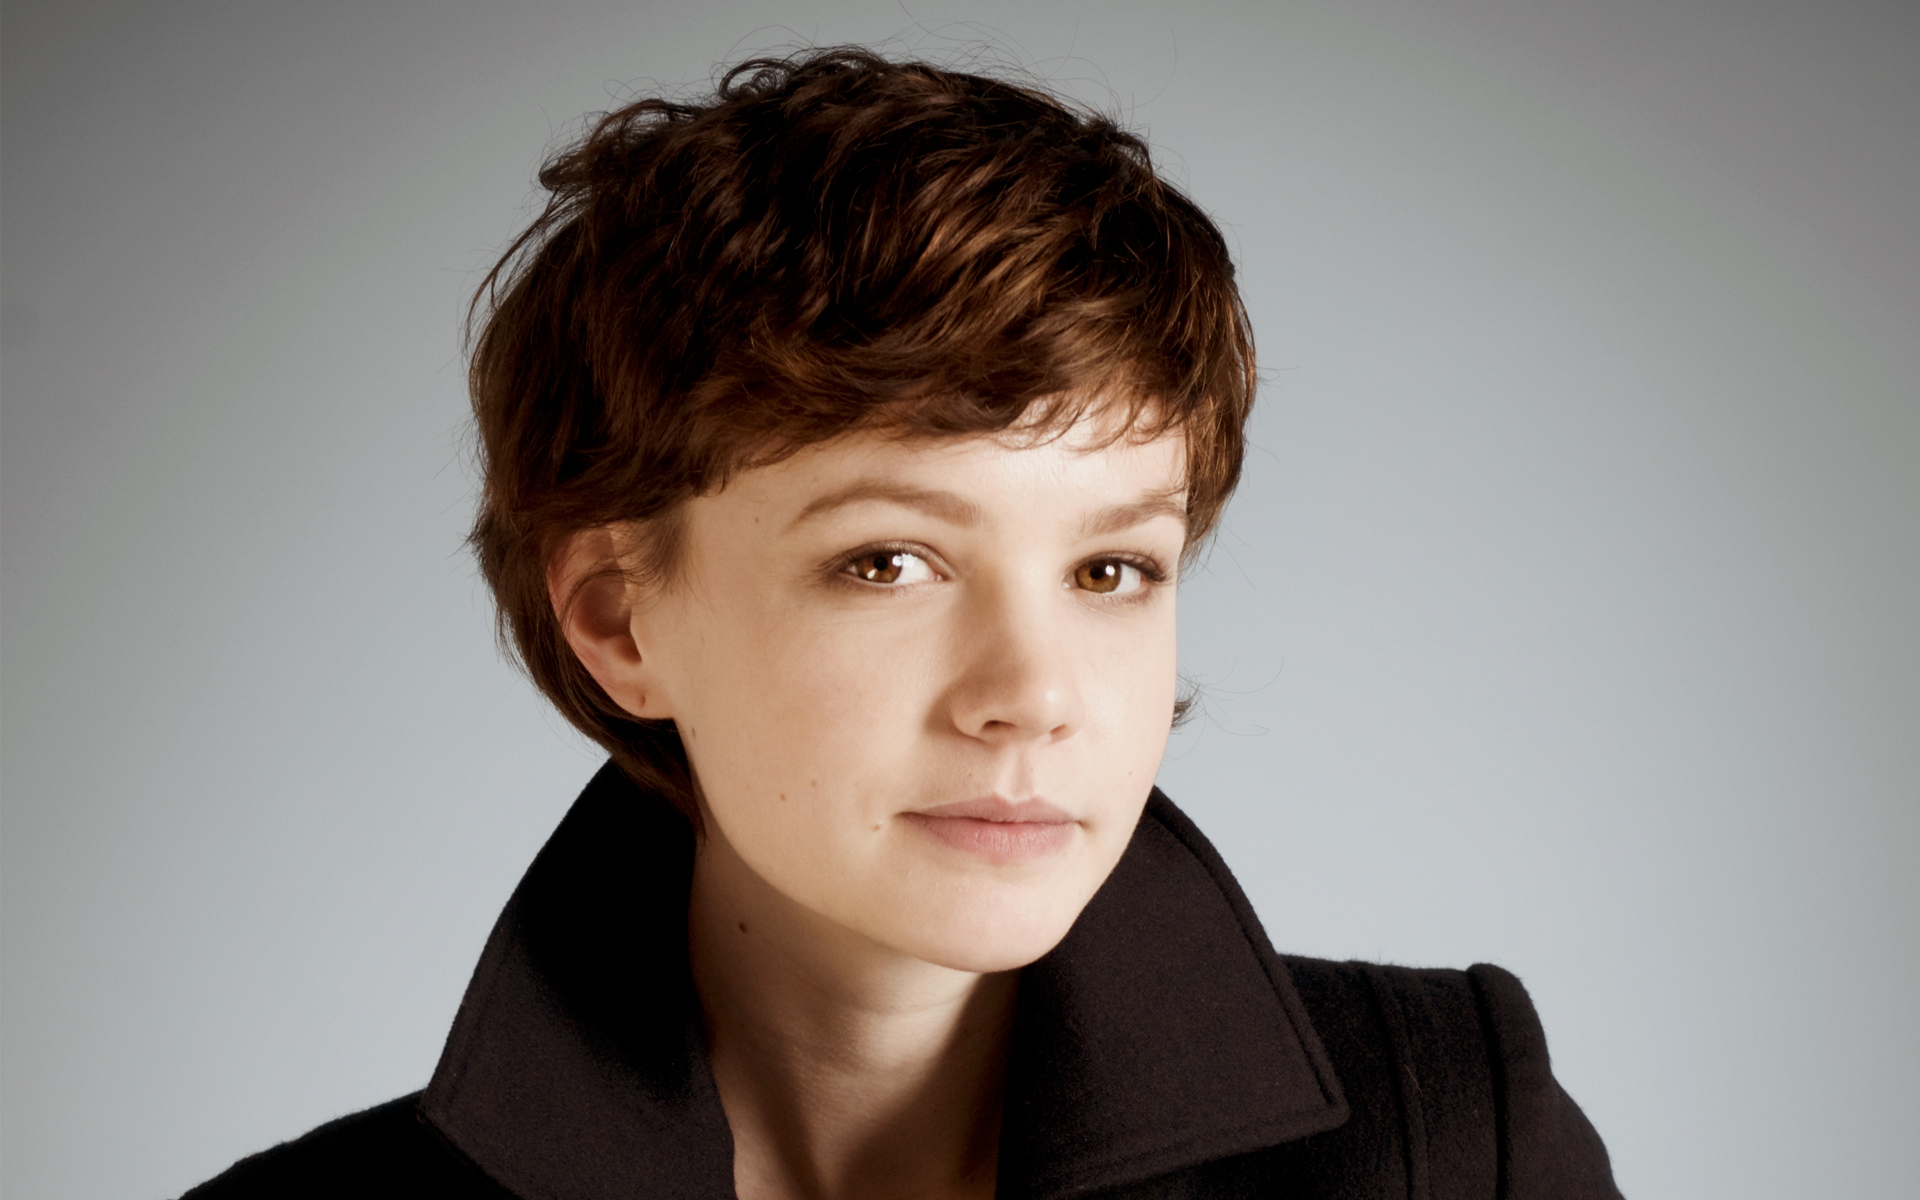 Stunning Carey Mulligan Wallpaper